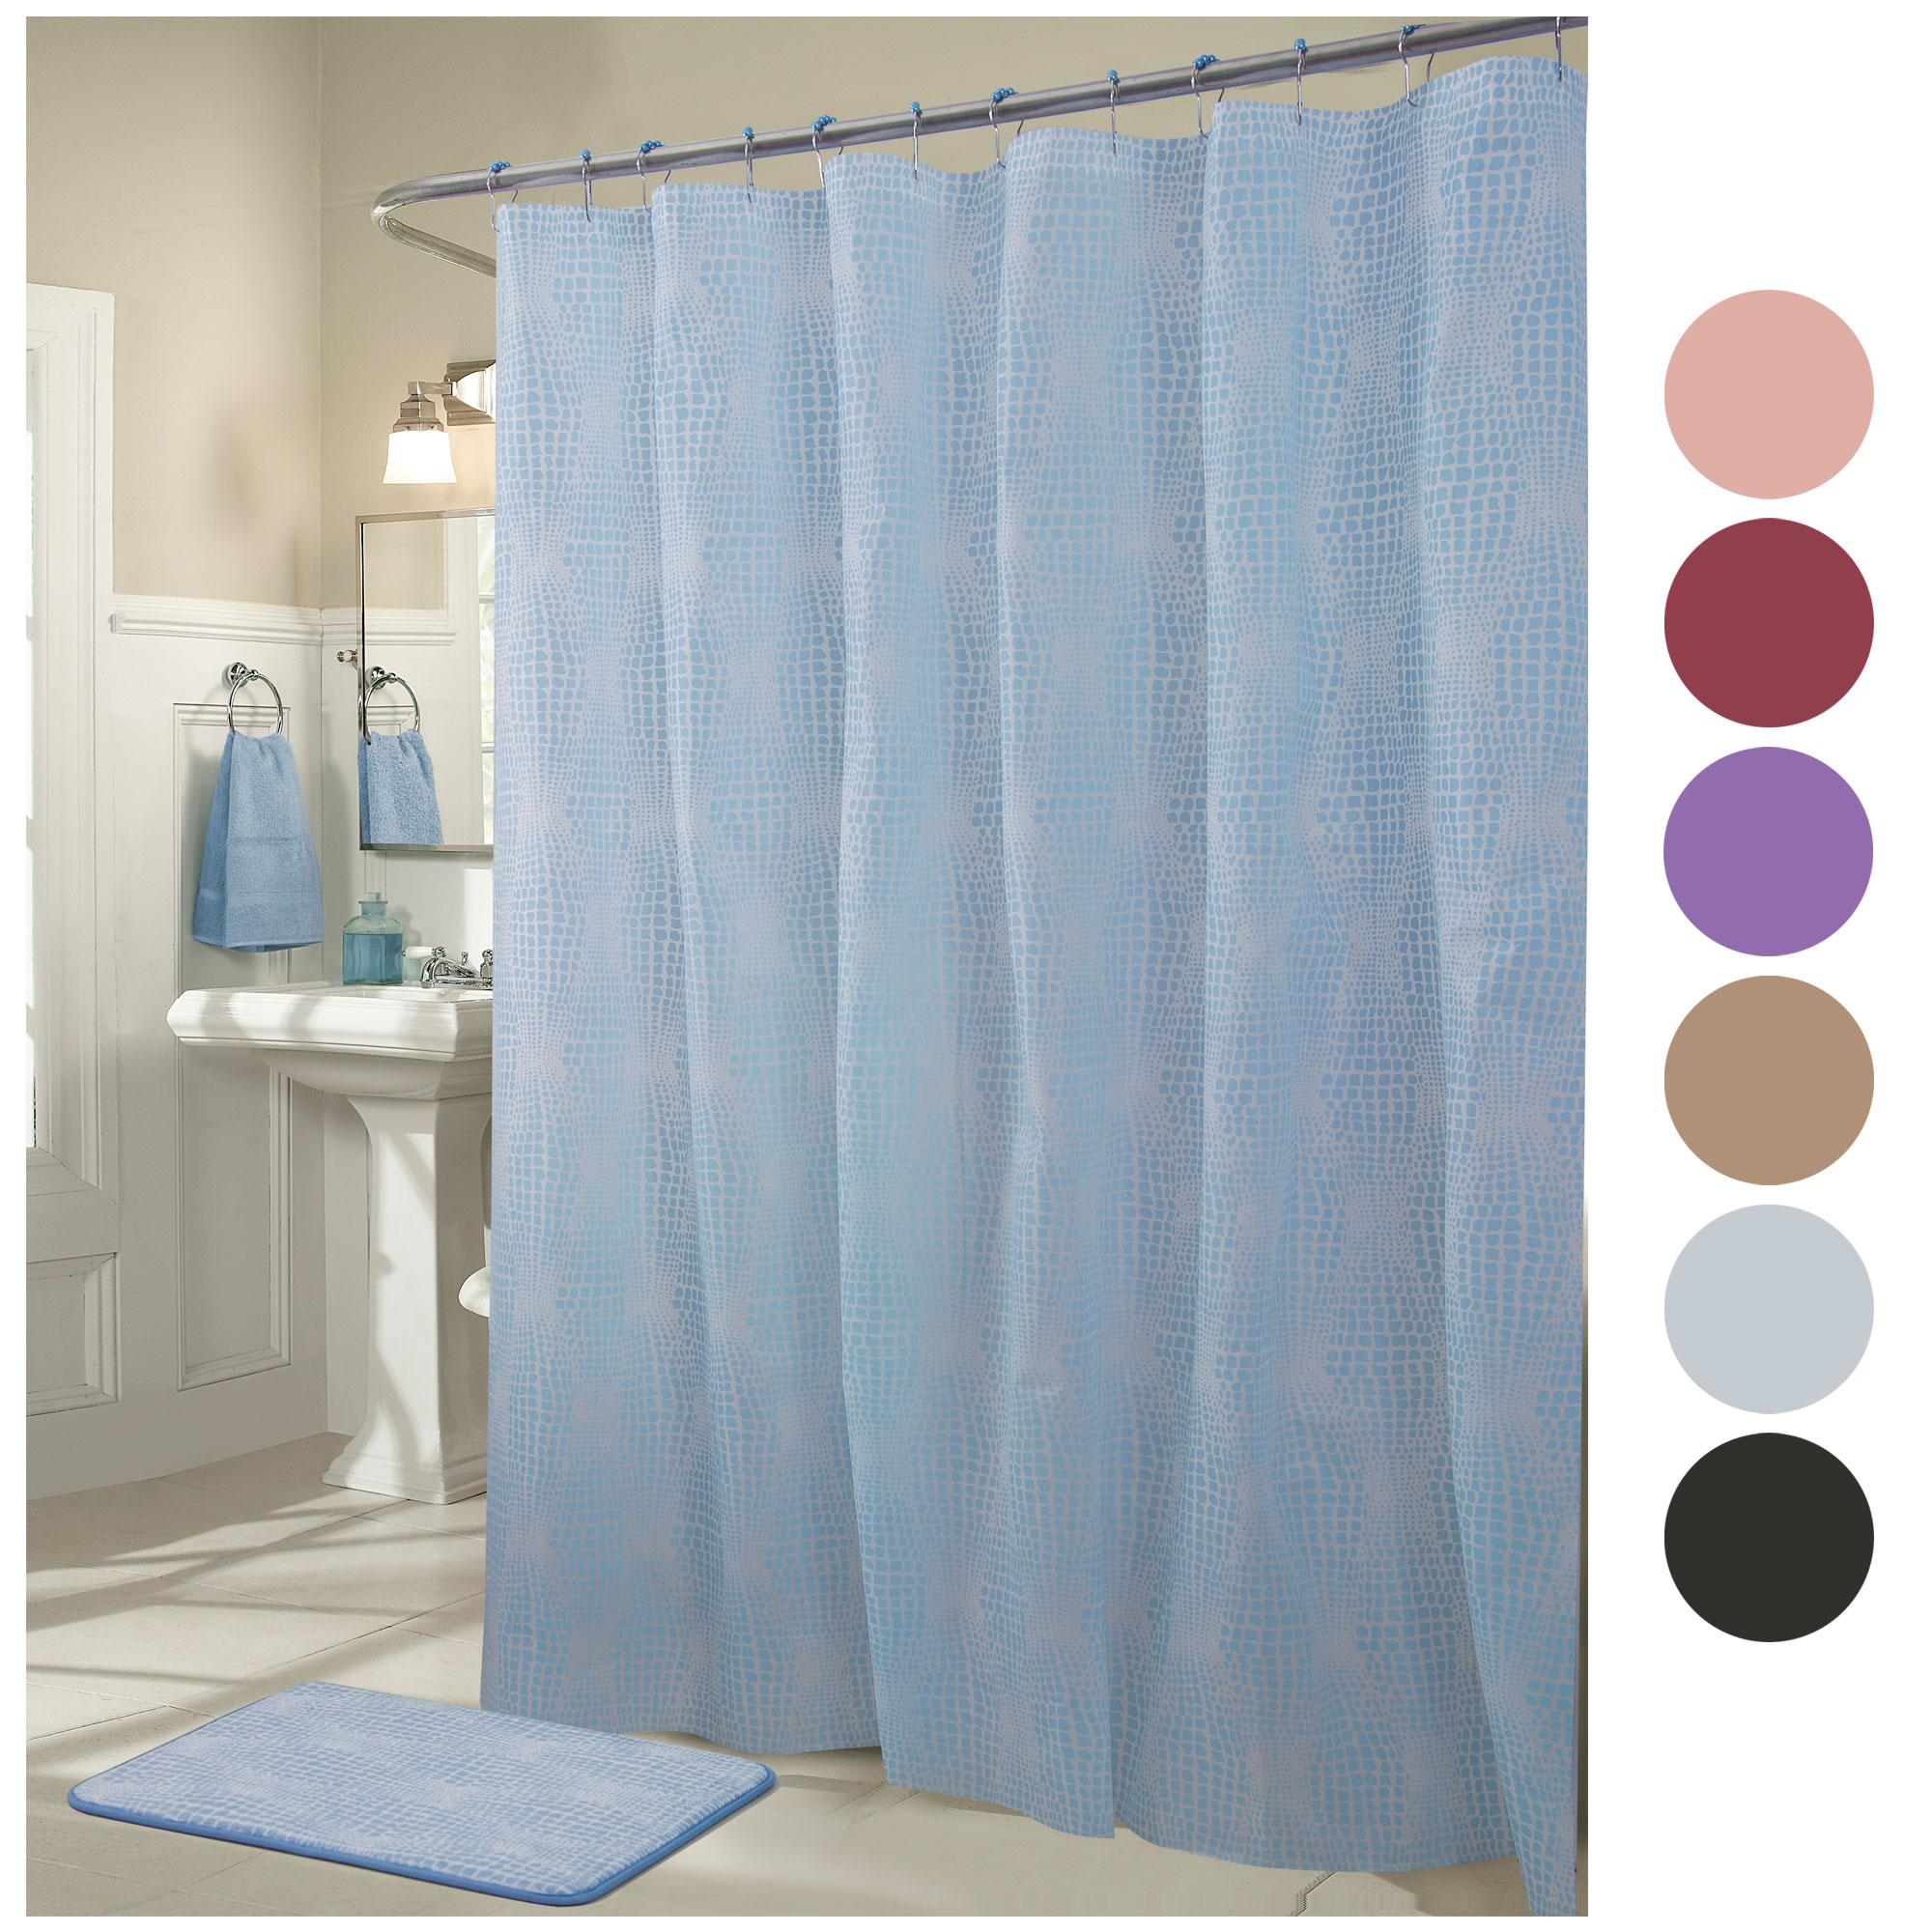 Details About 13pc Textured Modern Solid Bath Shower Curtain Metal Hooks And Memory Foam Mat